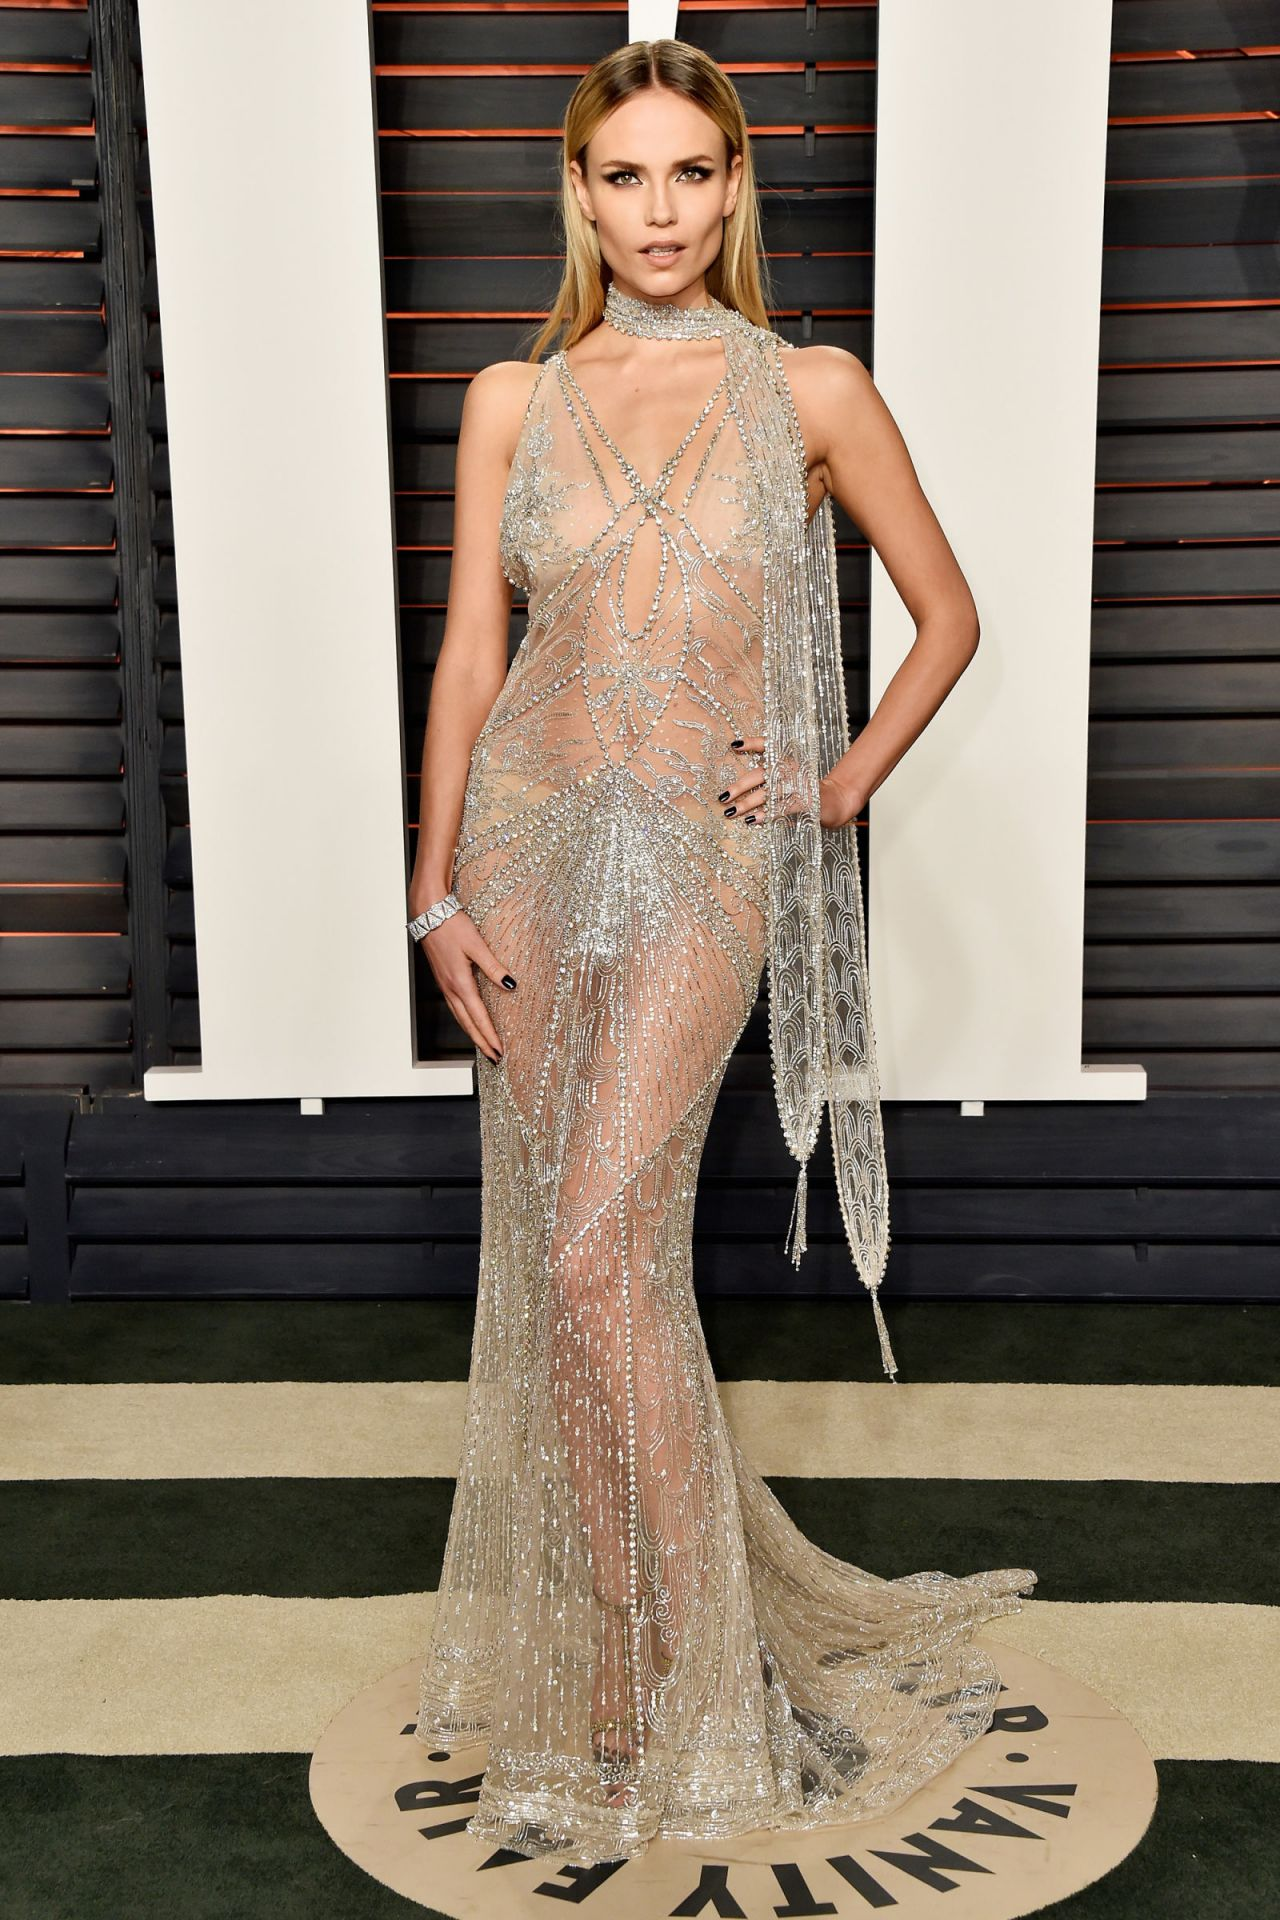 natasha-poly-2016-vanity-fair-oscar-party-in-beverly-hills-ca-1